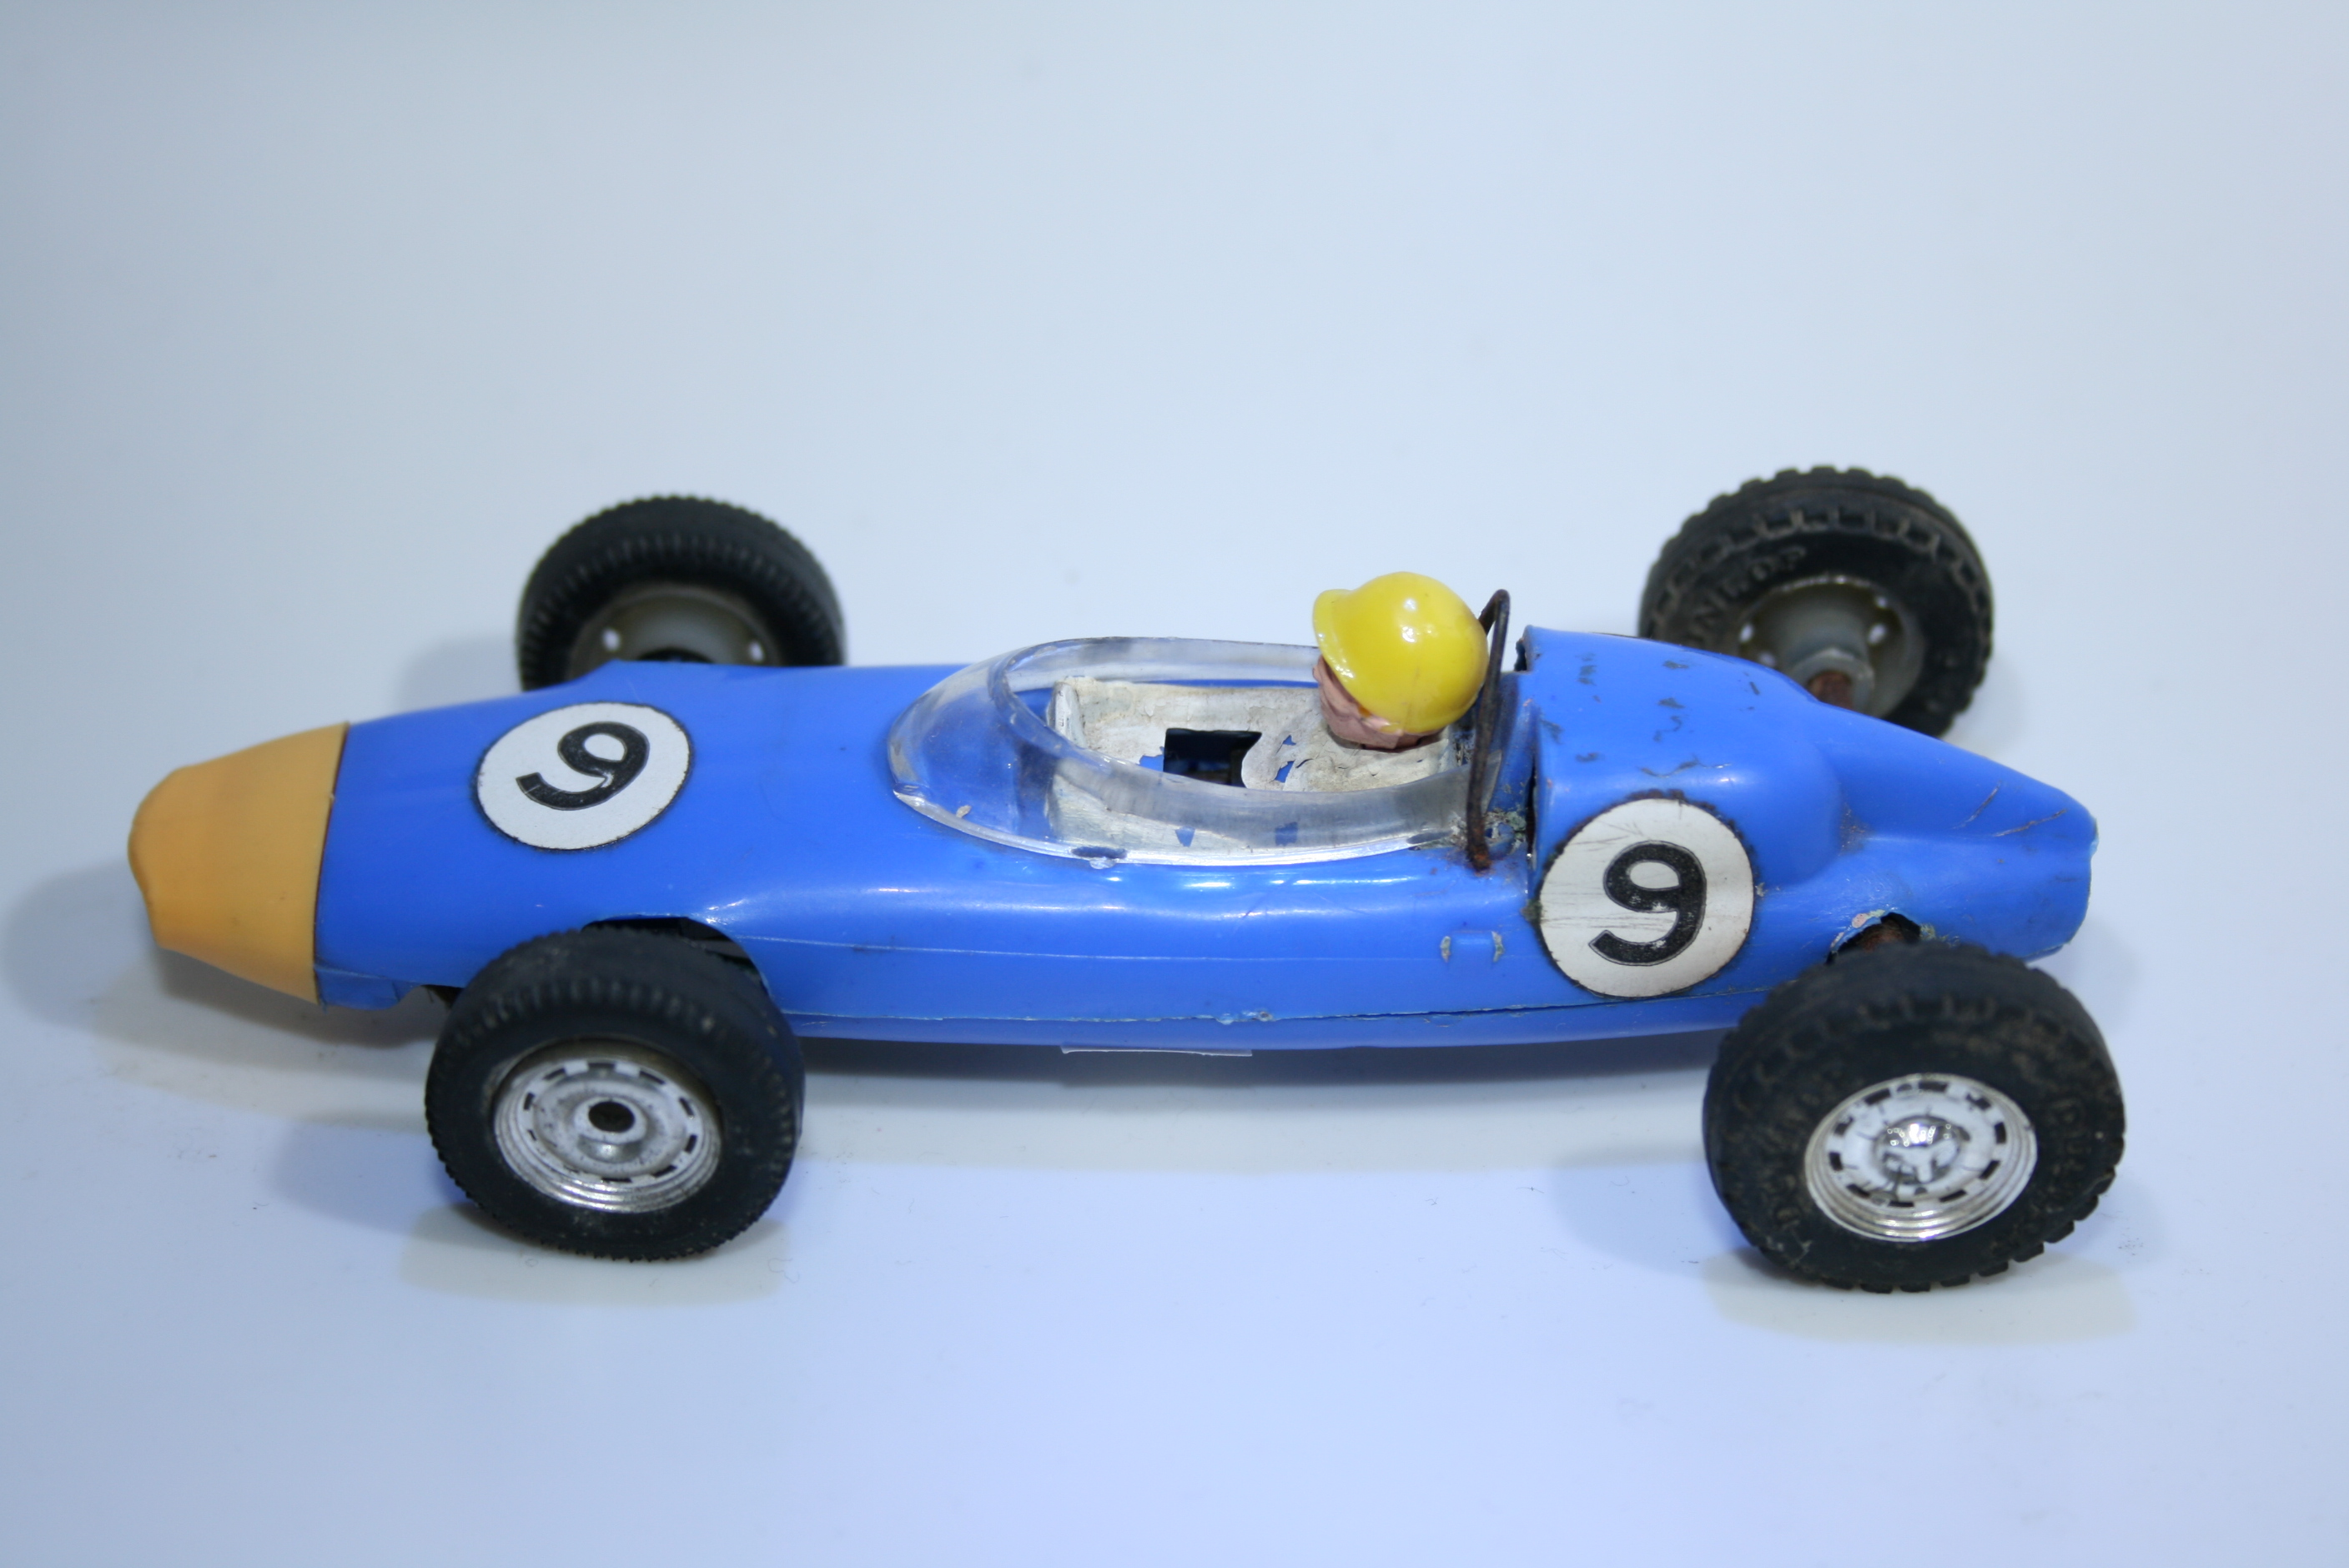 265 BRM P48 Climax 1960-61 G Hill Scalextric C72 1964-65